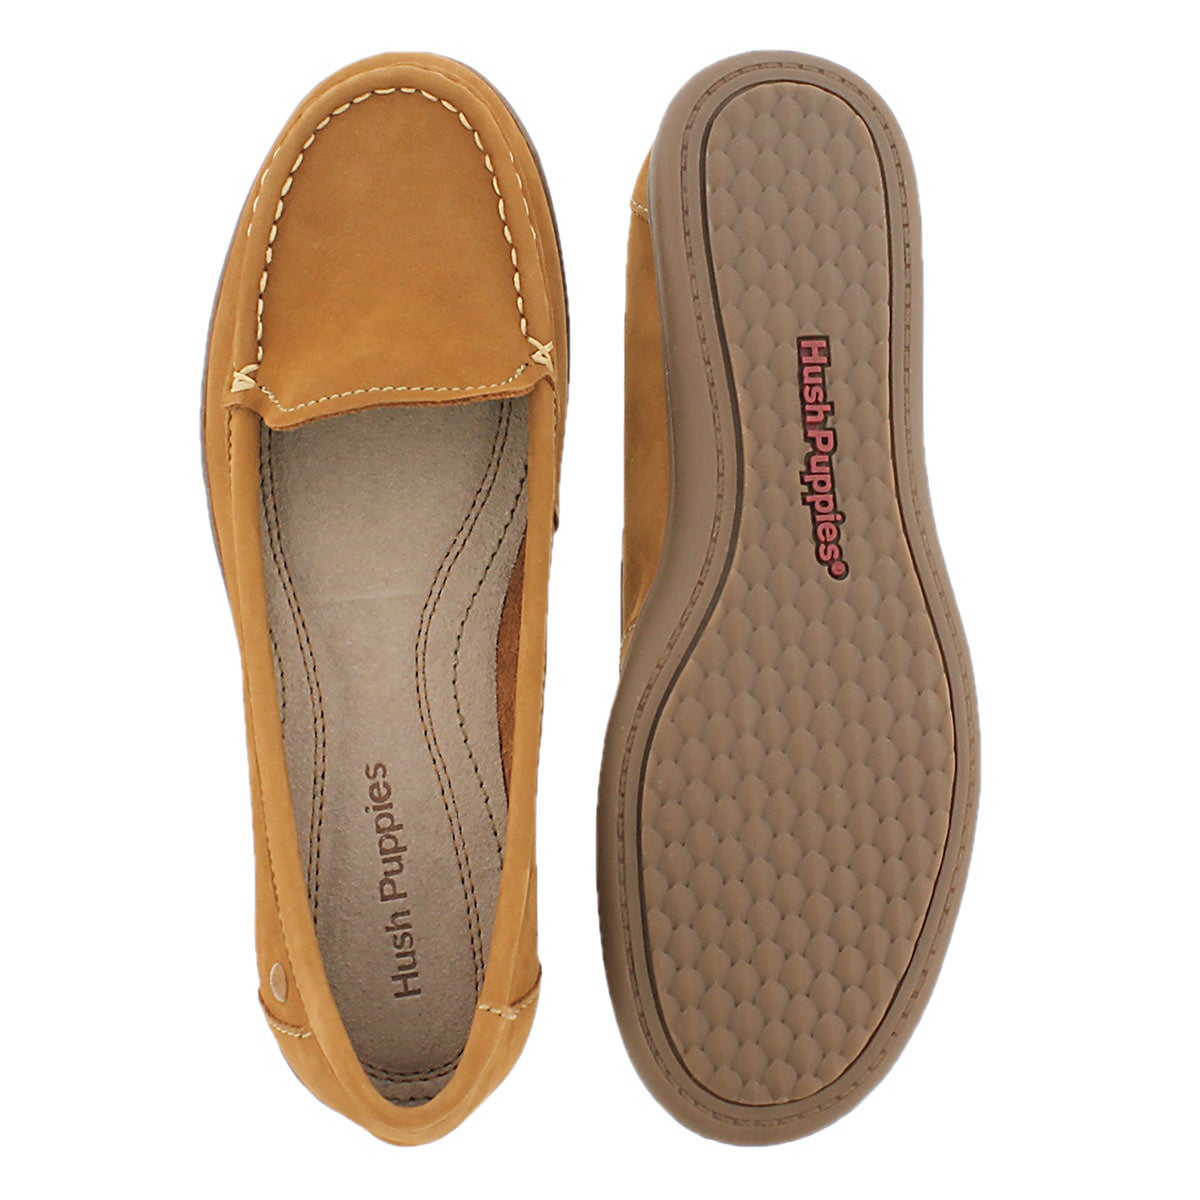 Lds Ryann Claudine tan casual loafer